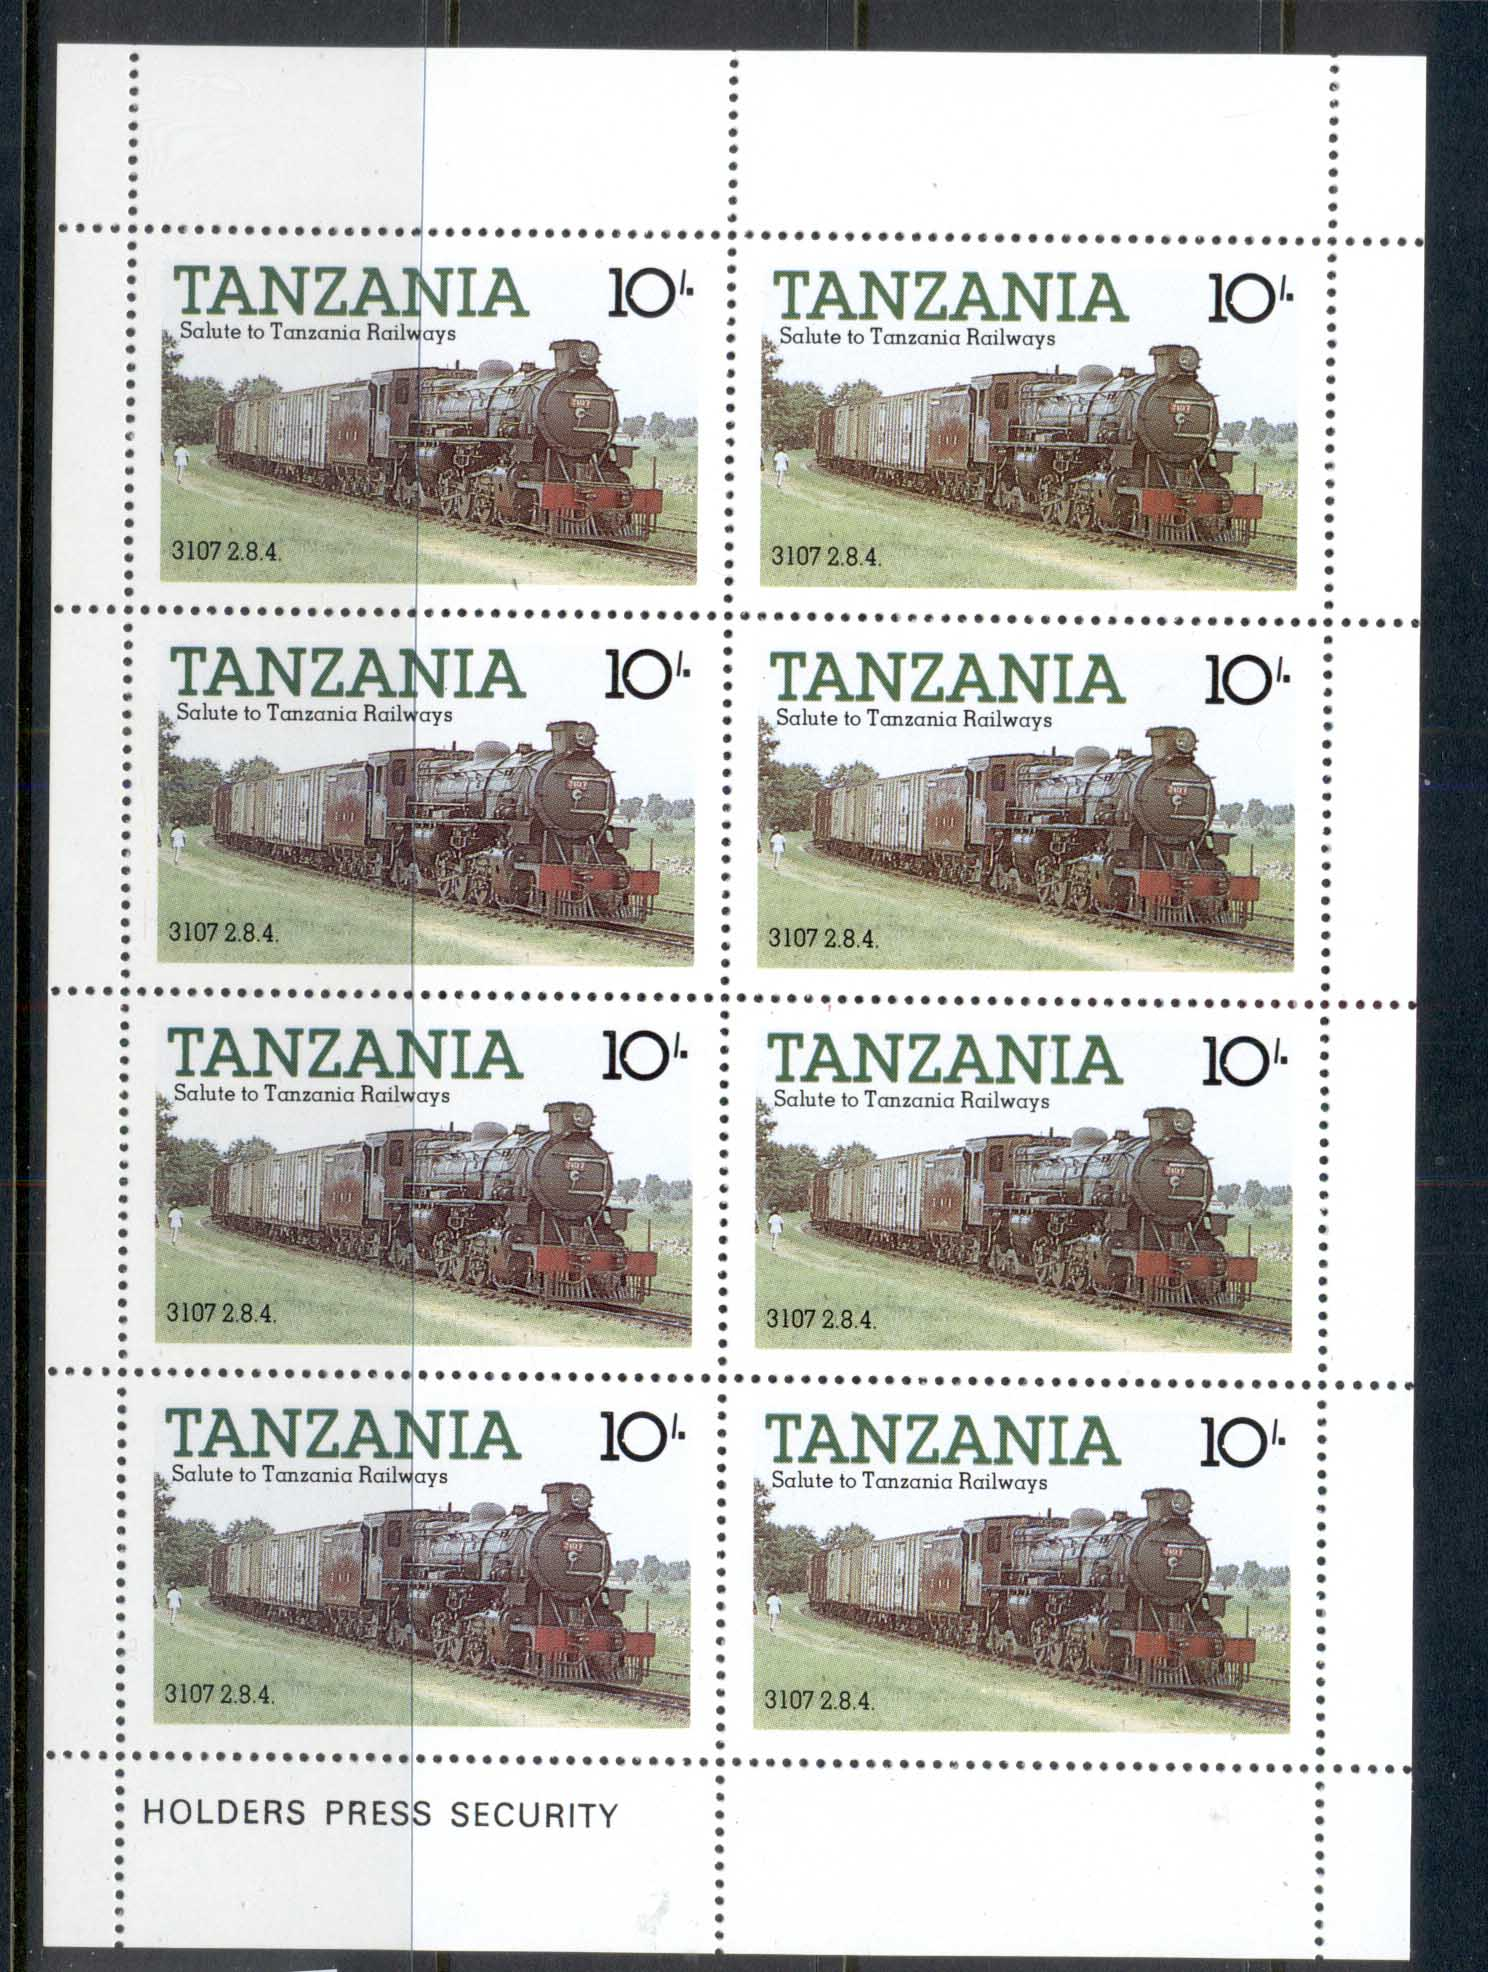 Tanzania 1985 Tanzanian Railways Locomotives 10/- sheetlet MUH